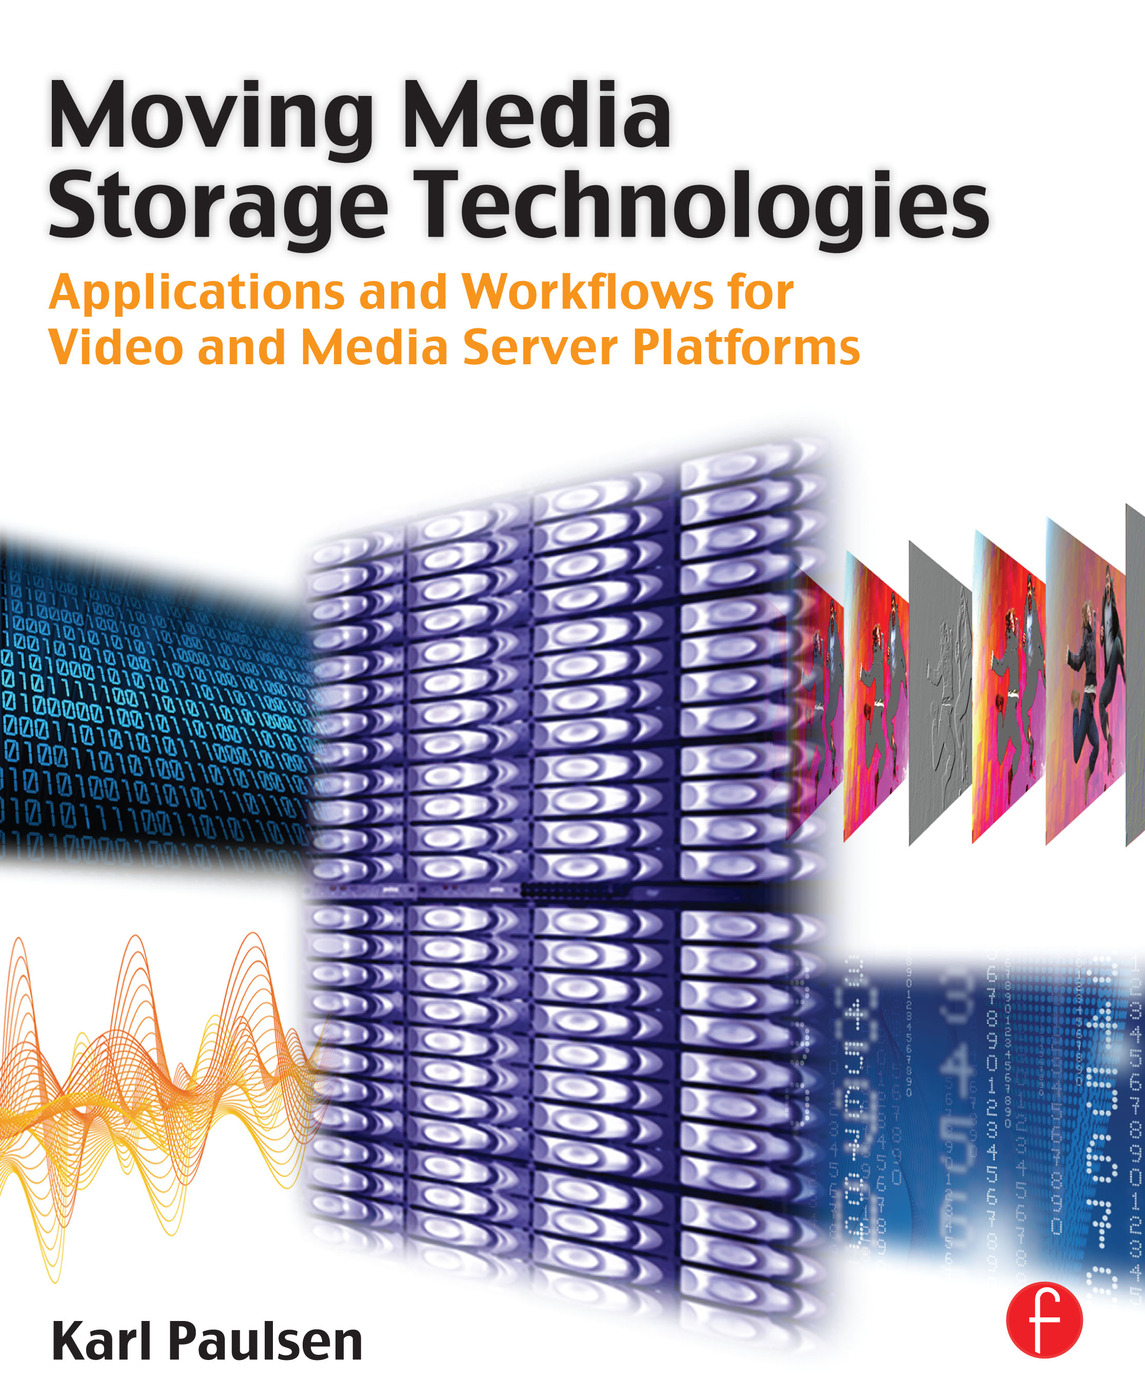 Moving Media Storage Technologies: Applications & Workflows for Video and Media Server Platforms book cover